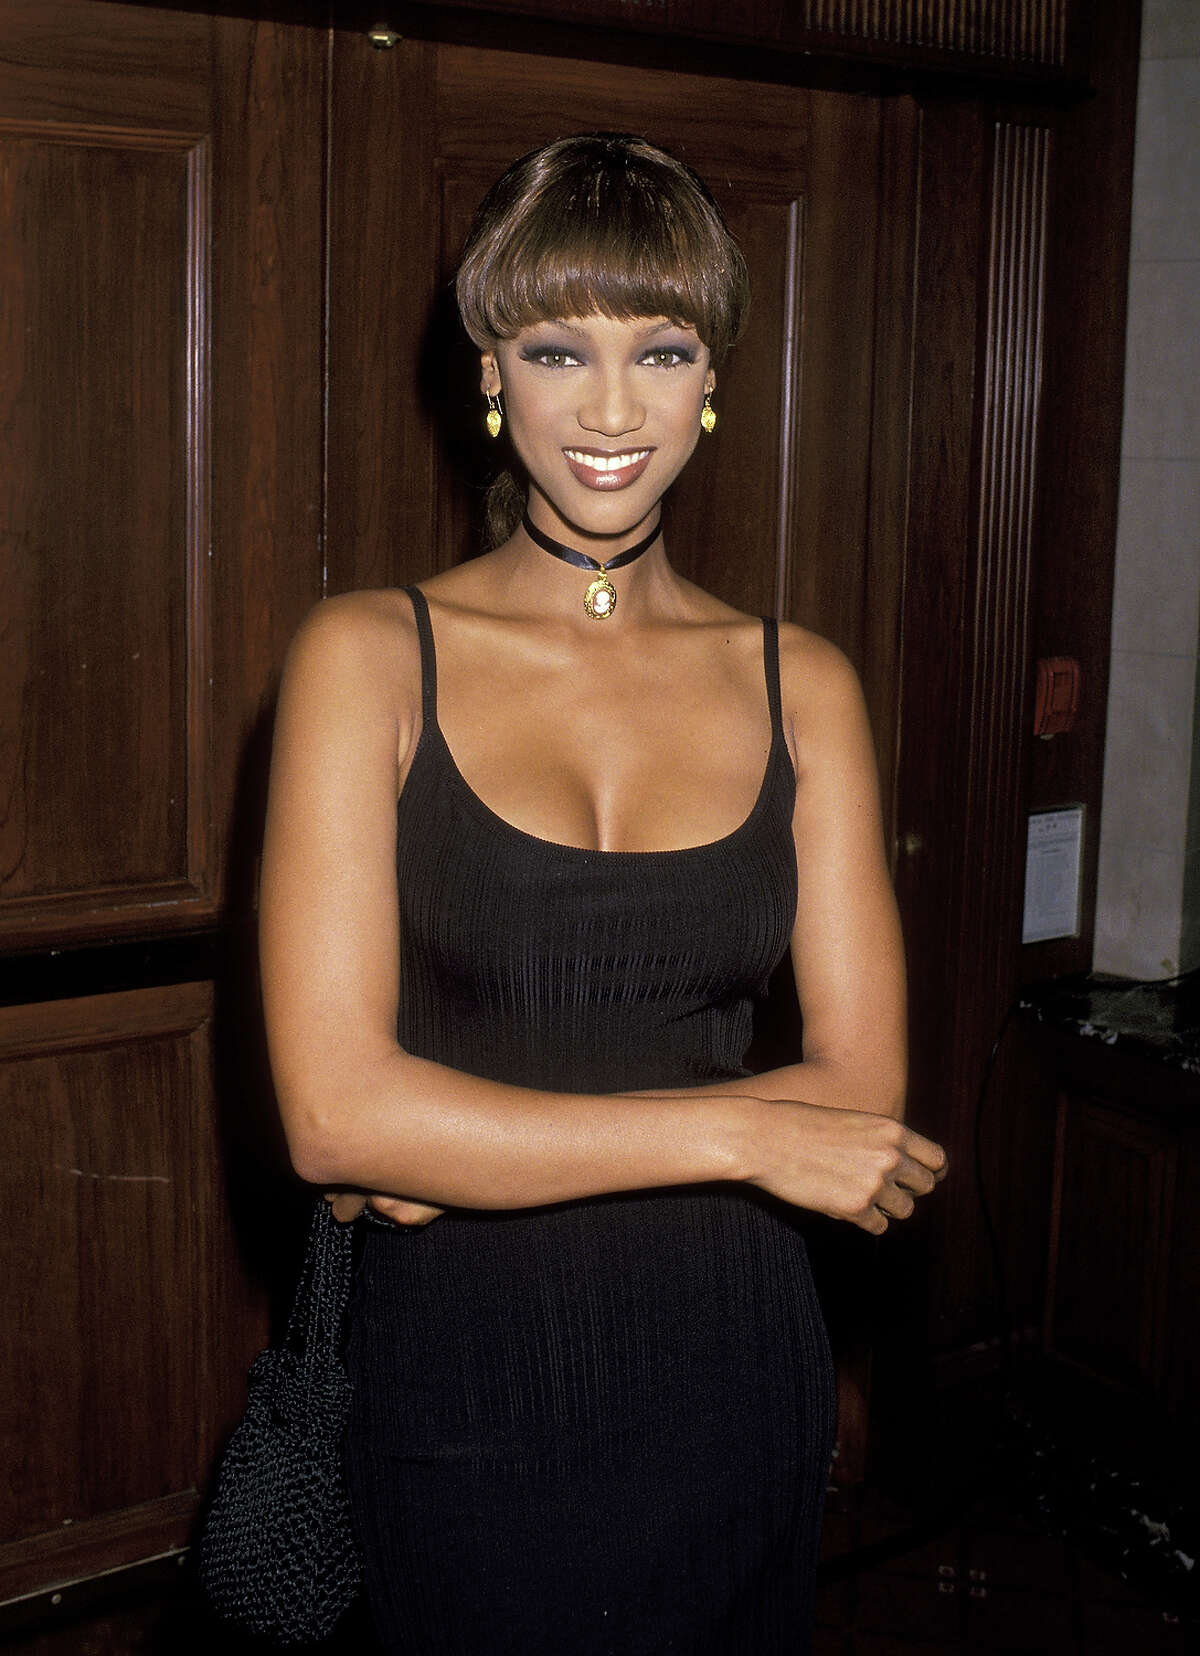 Tyra Banks in 1993.